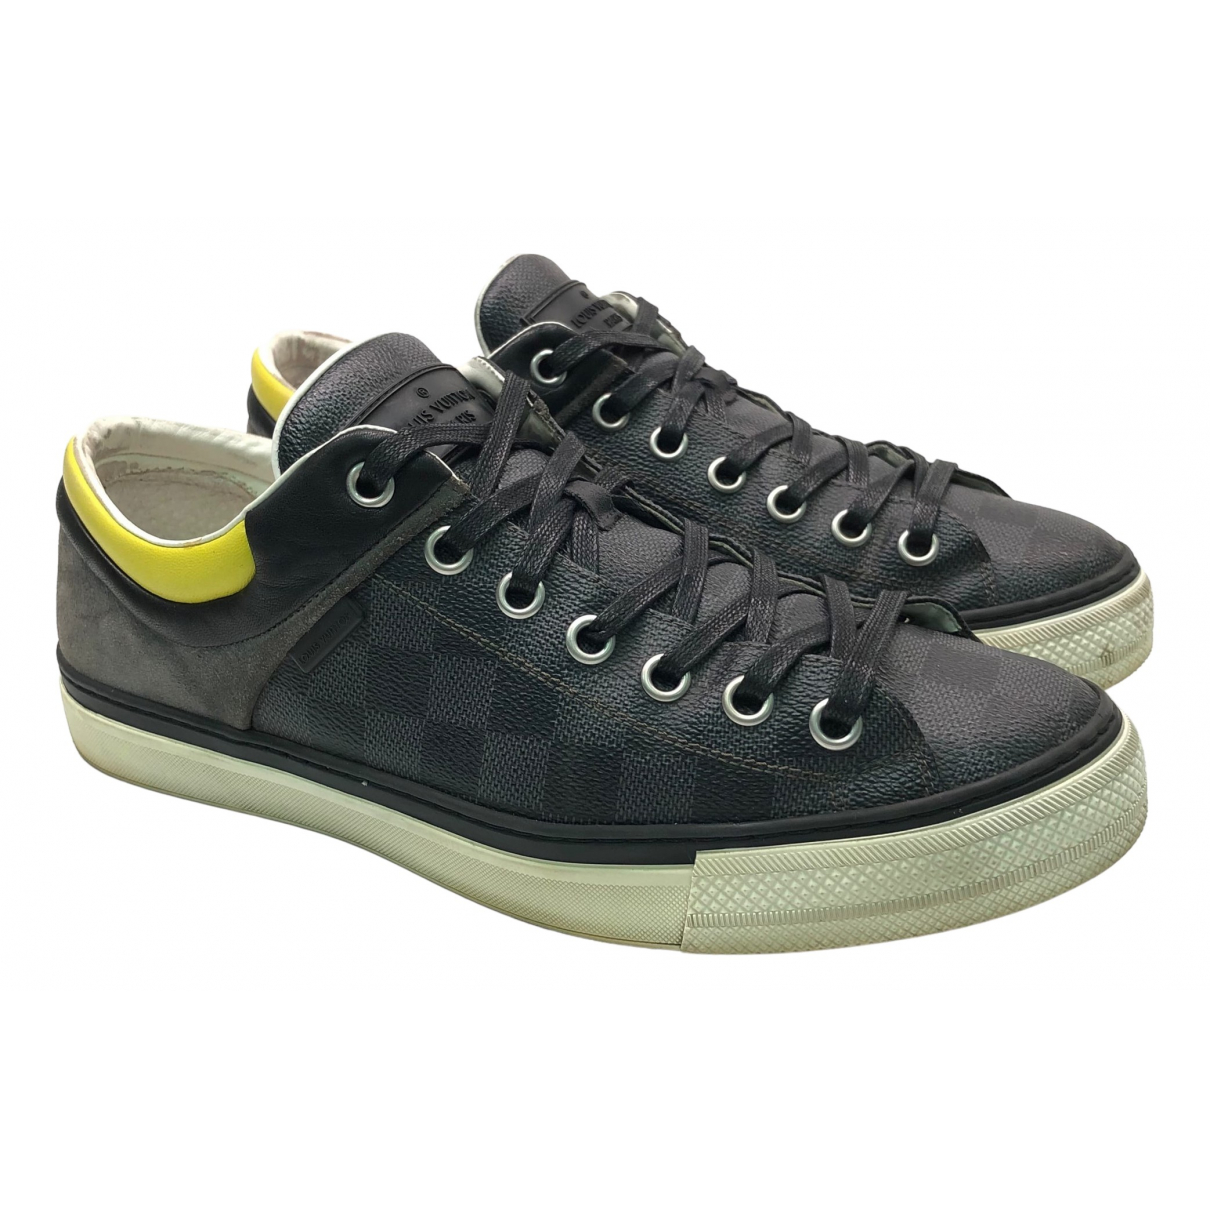 Louis Vuitton \N Sneakers in  Grau Leinen